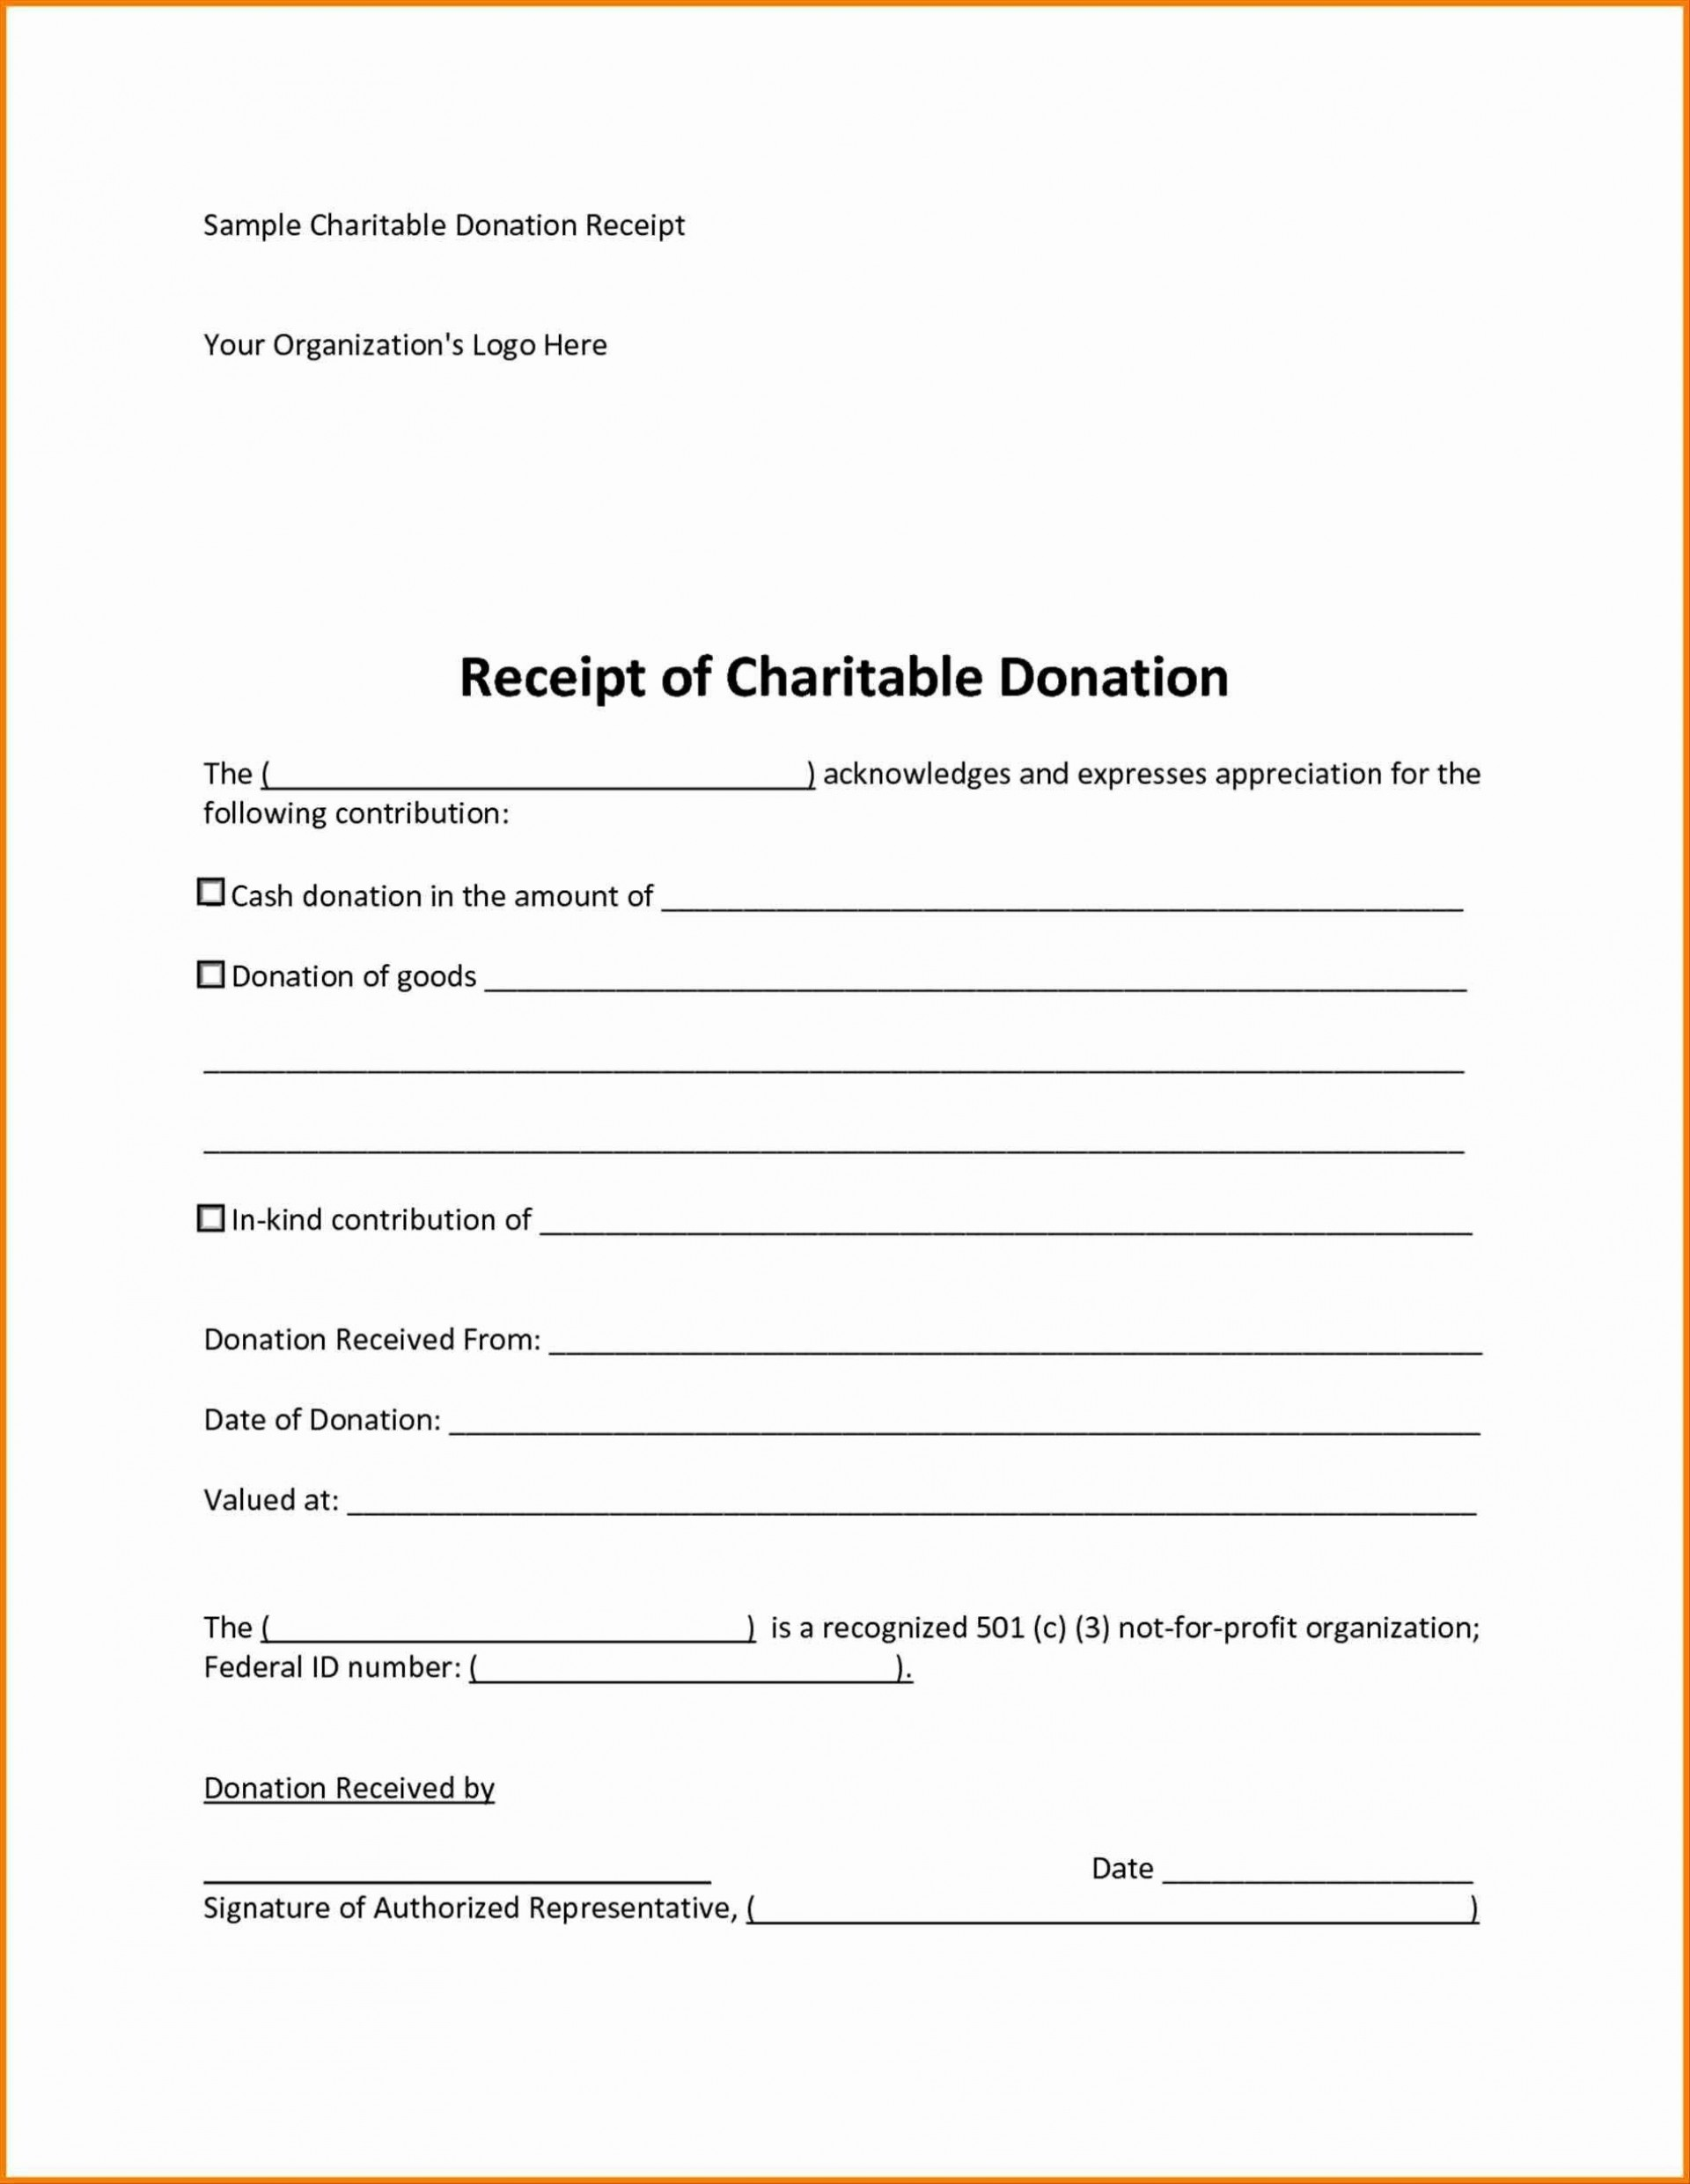 006 Stupendou Charitable Donation Receipt Template Photo  Sample Ir Contribution Form Charity1920